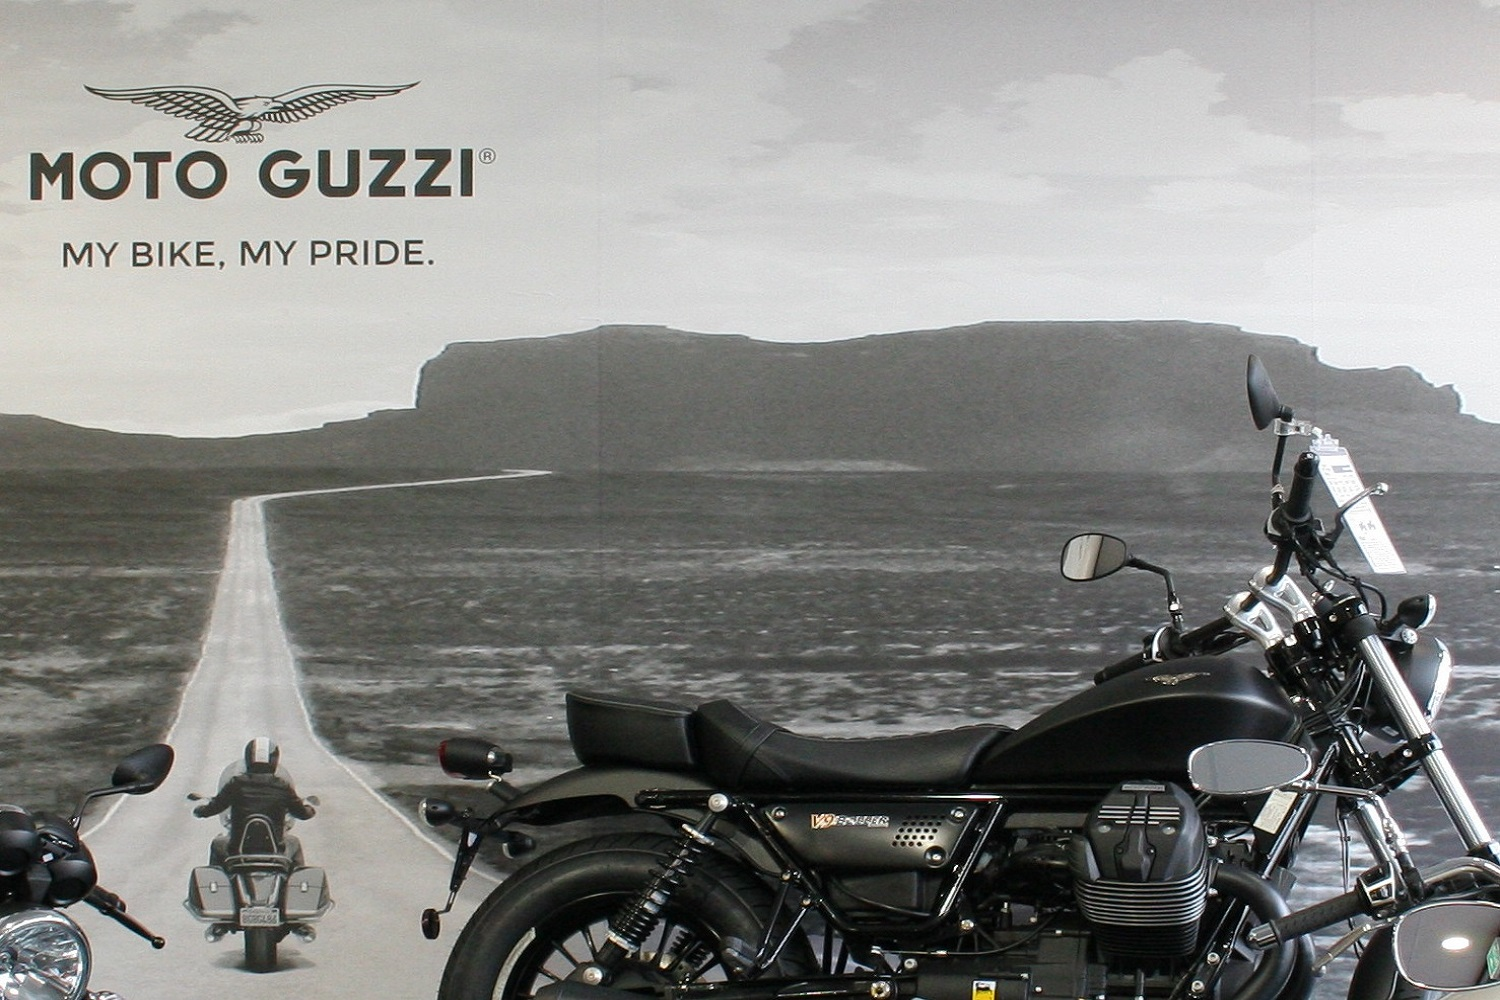 Moto Guzzi Motorcycle Store Picture